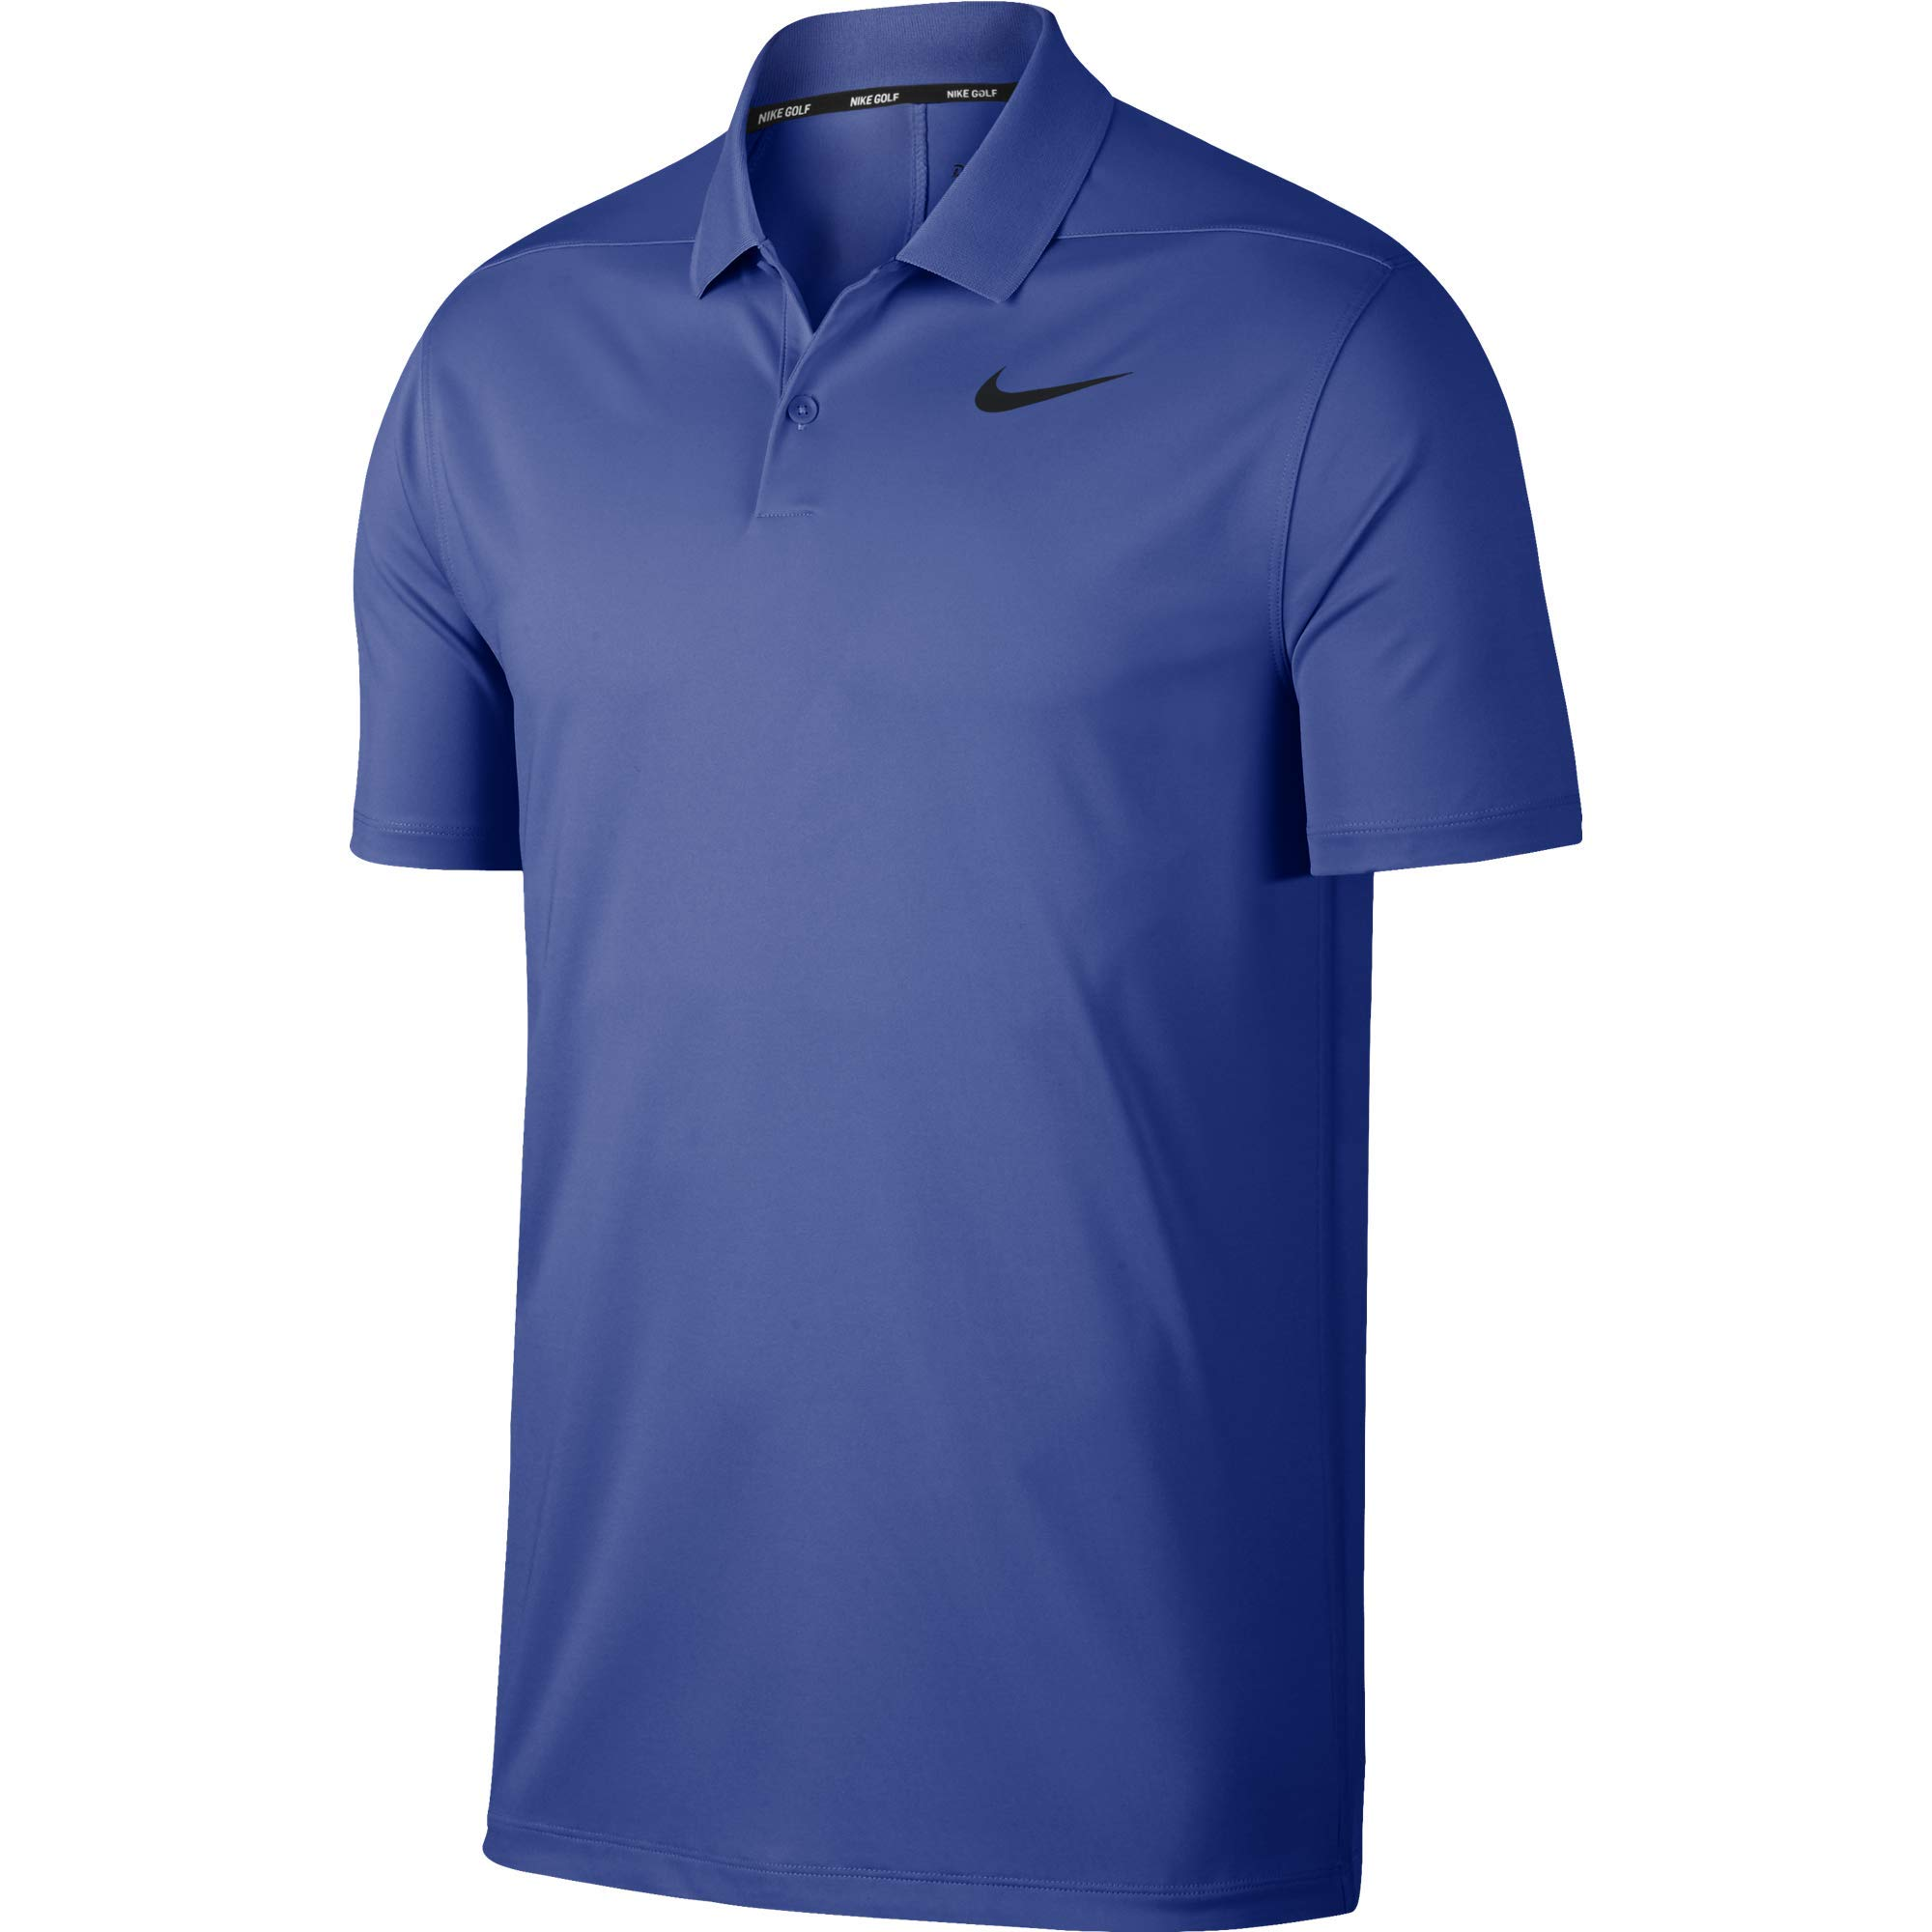 Nike Men's Dry Victory Polo Solid Left Chest, Game Royal/Black, Small